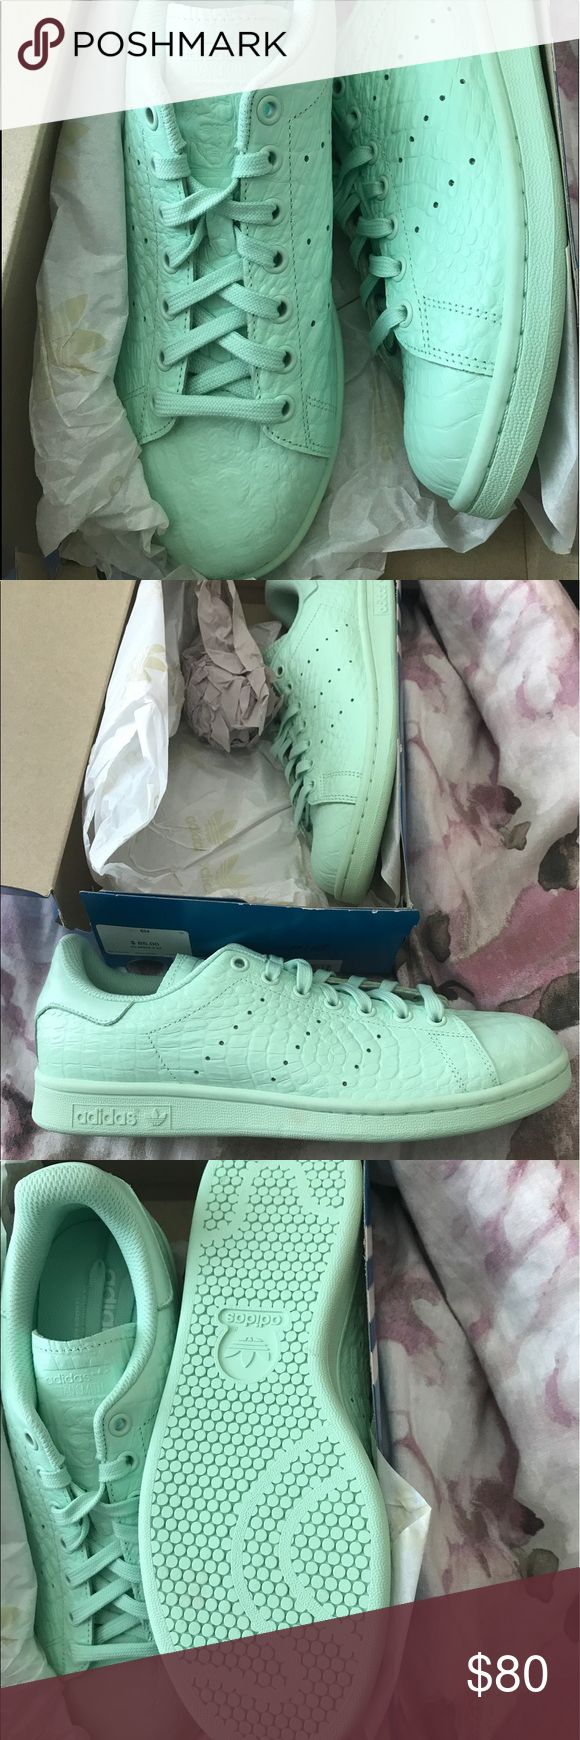 Brand New Mint Green Adidas Stan Smith Sneakers Brand New only wore them to try them on mint green Stan smiths from adidas adidas Shoes Sneakers